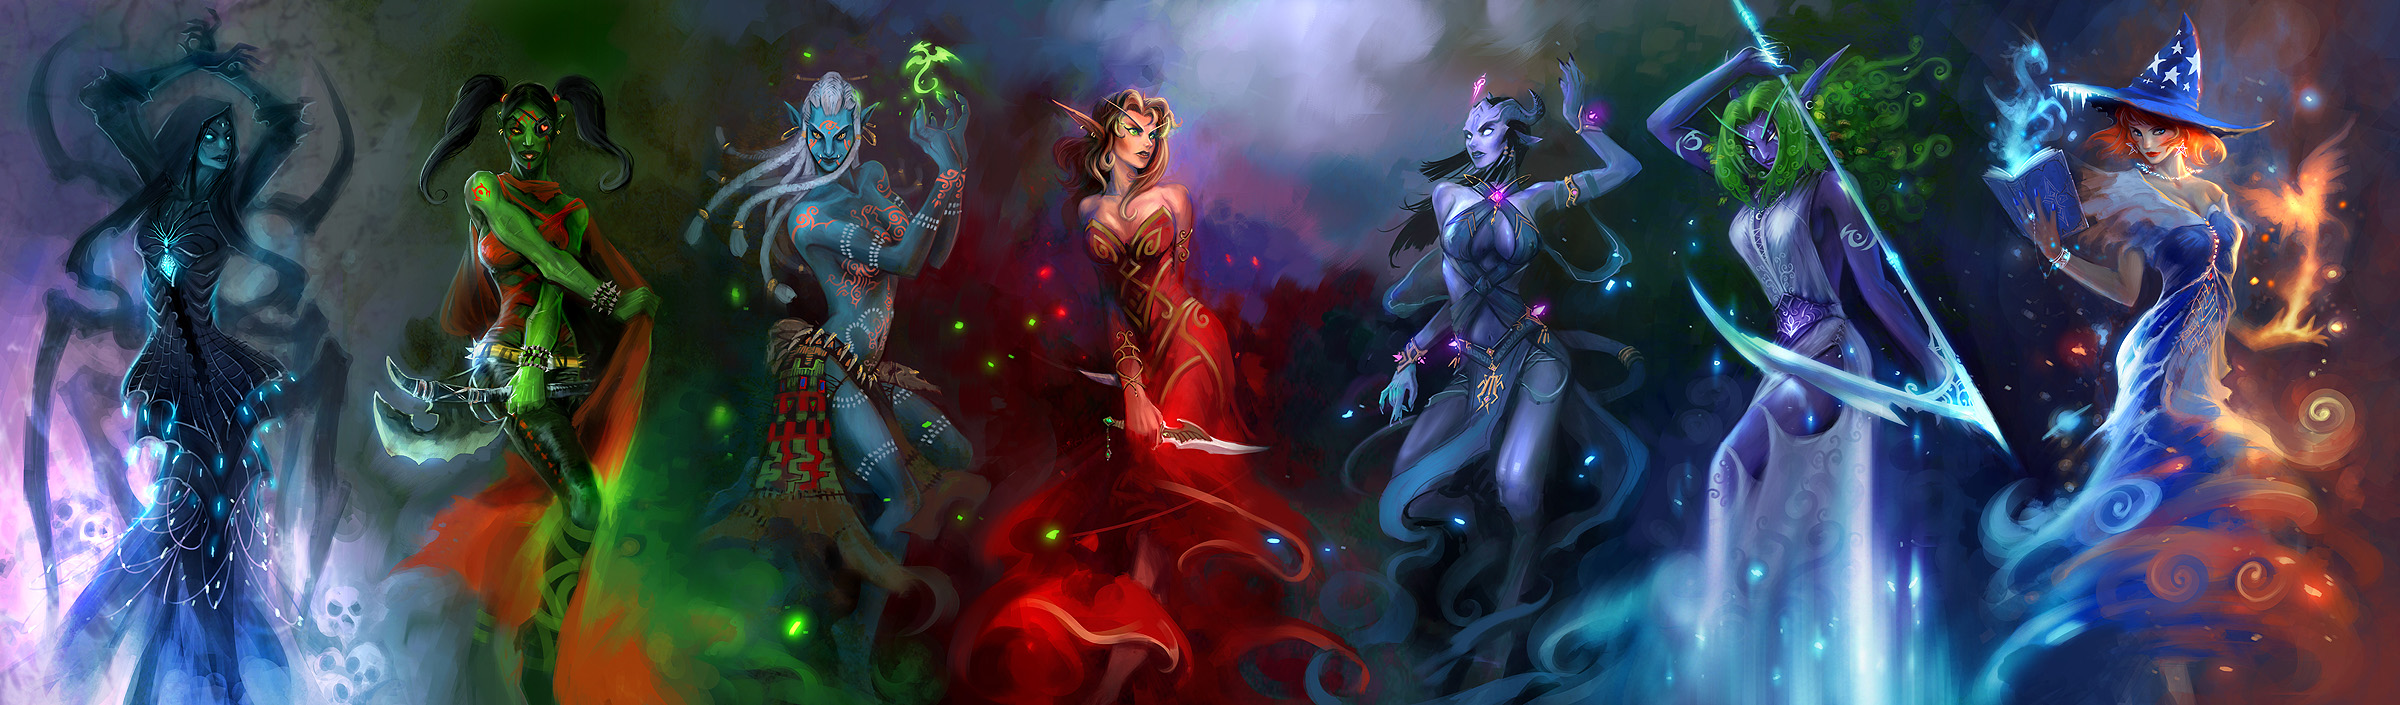 World of warcraft poen nigh elf and  nackt image